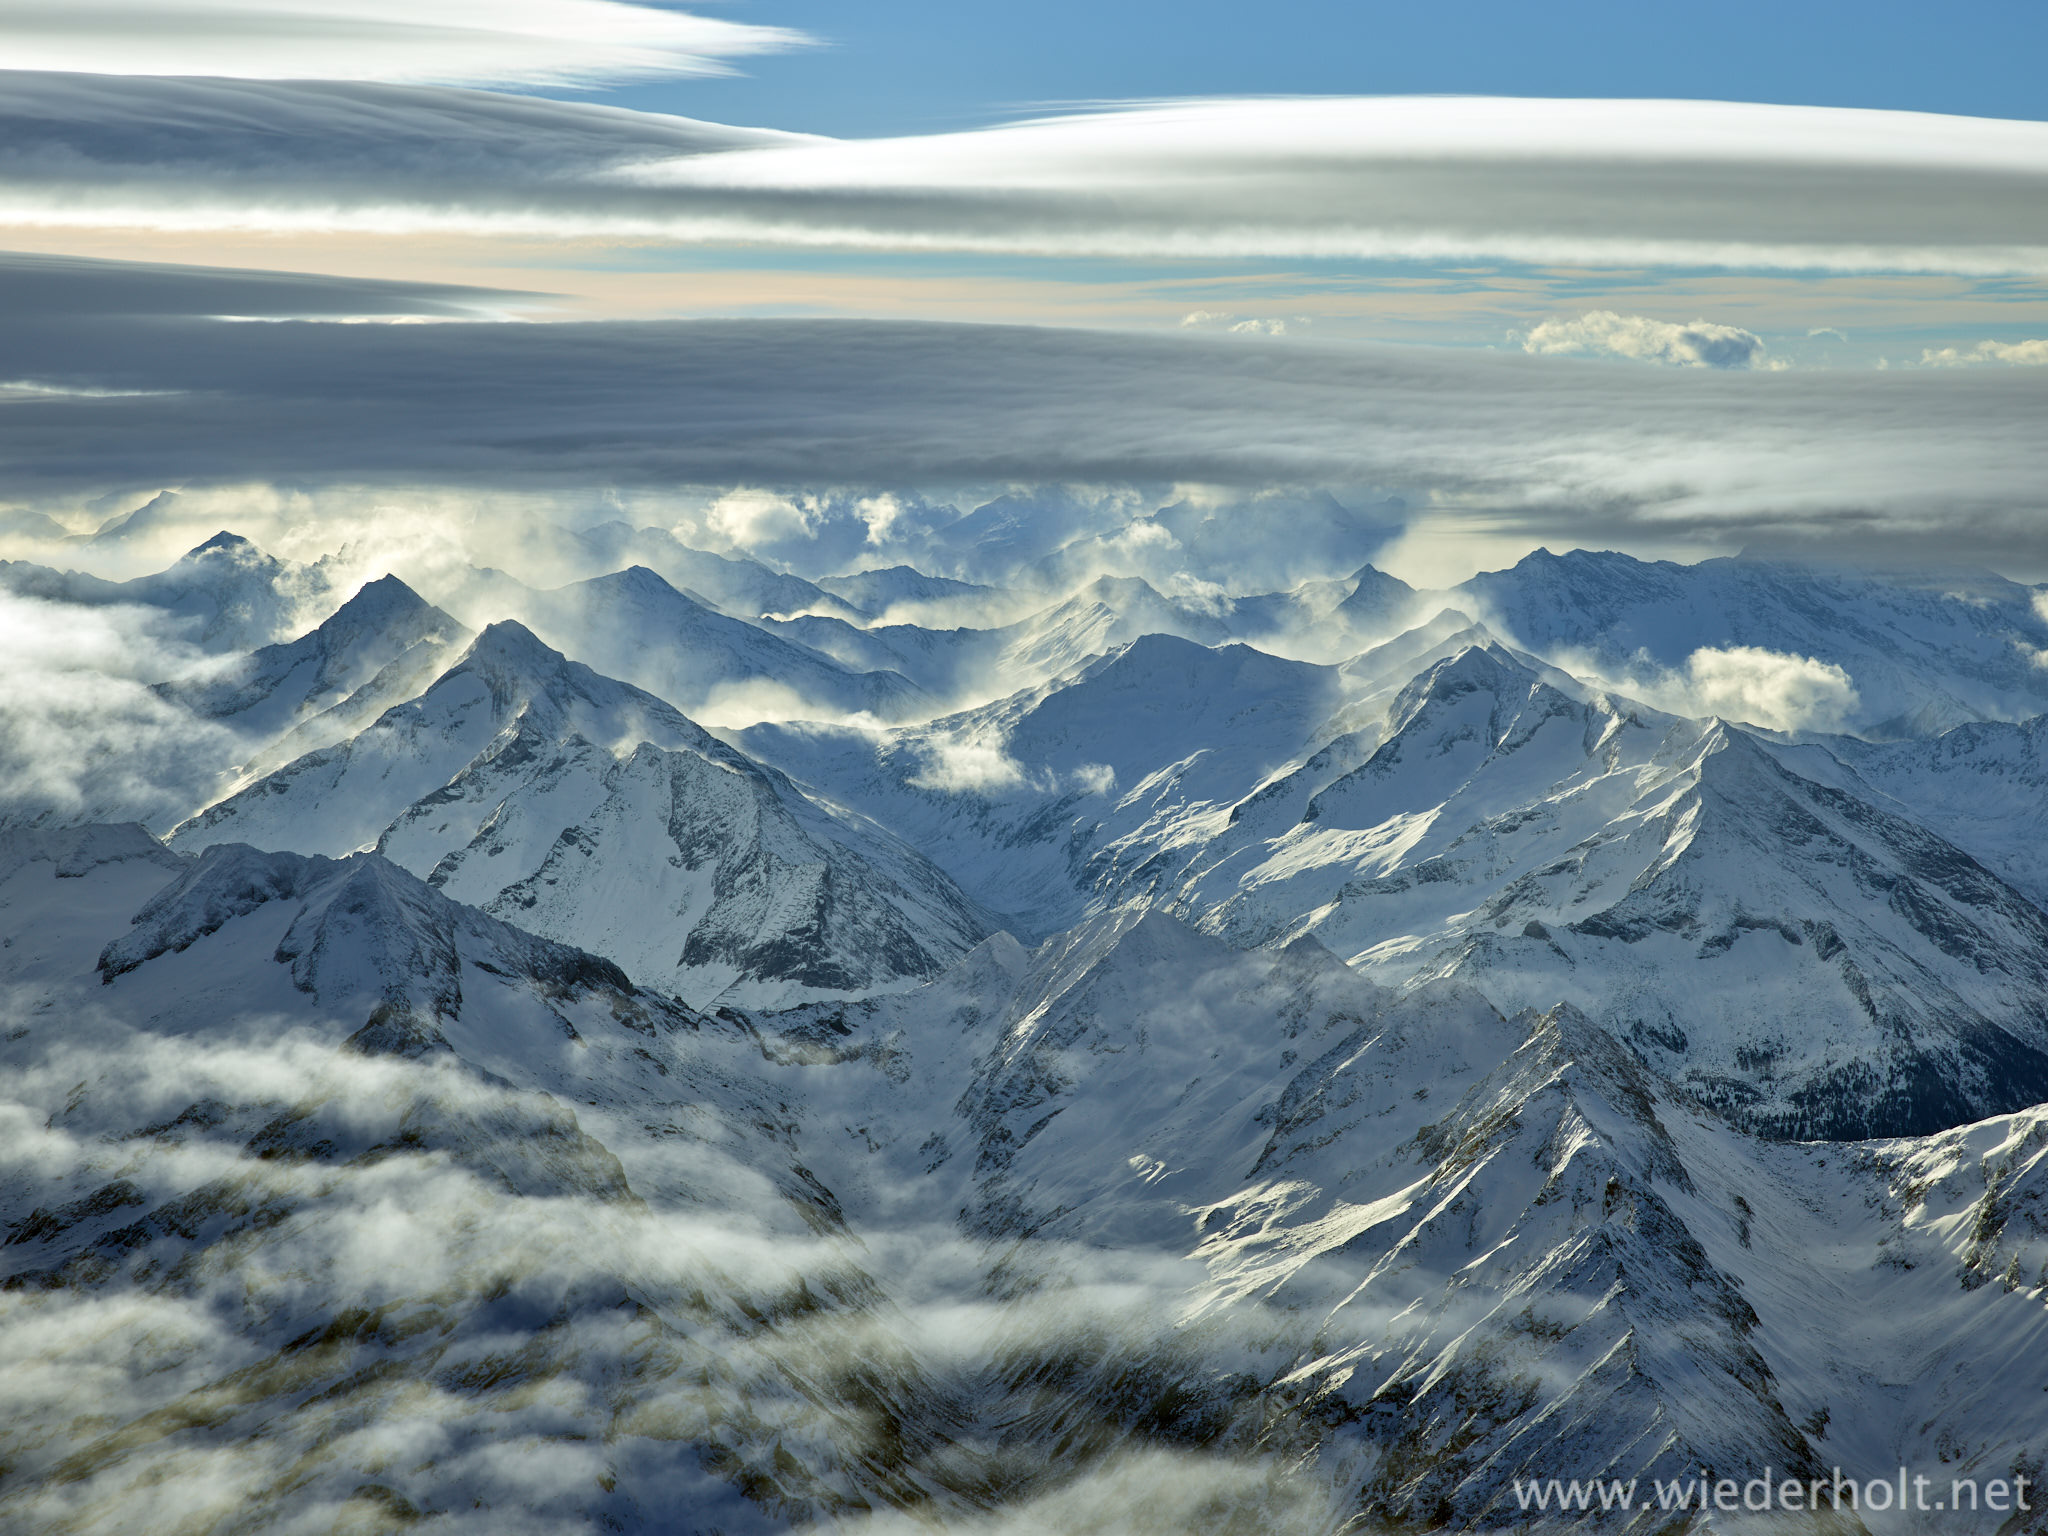 Crossing the Alps on a Hot Air Balloon